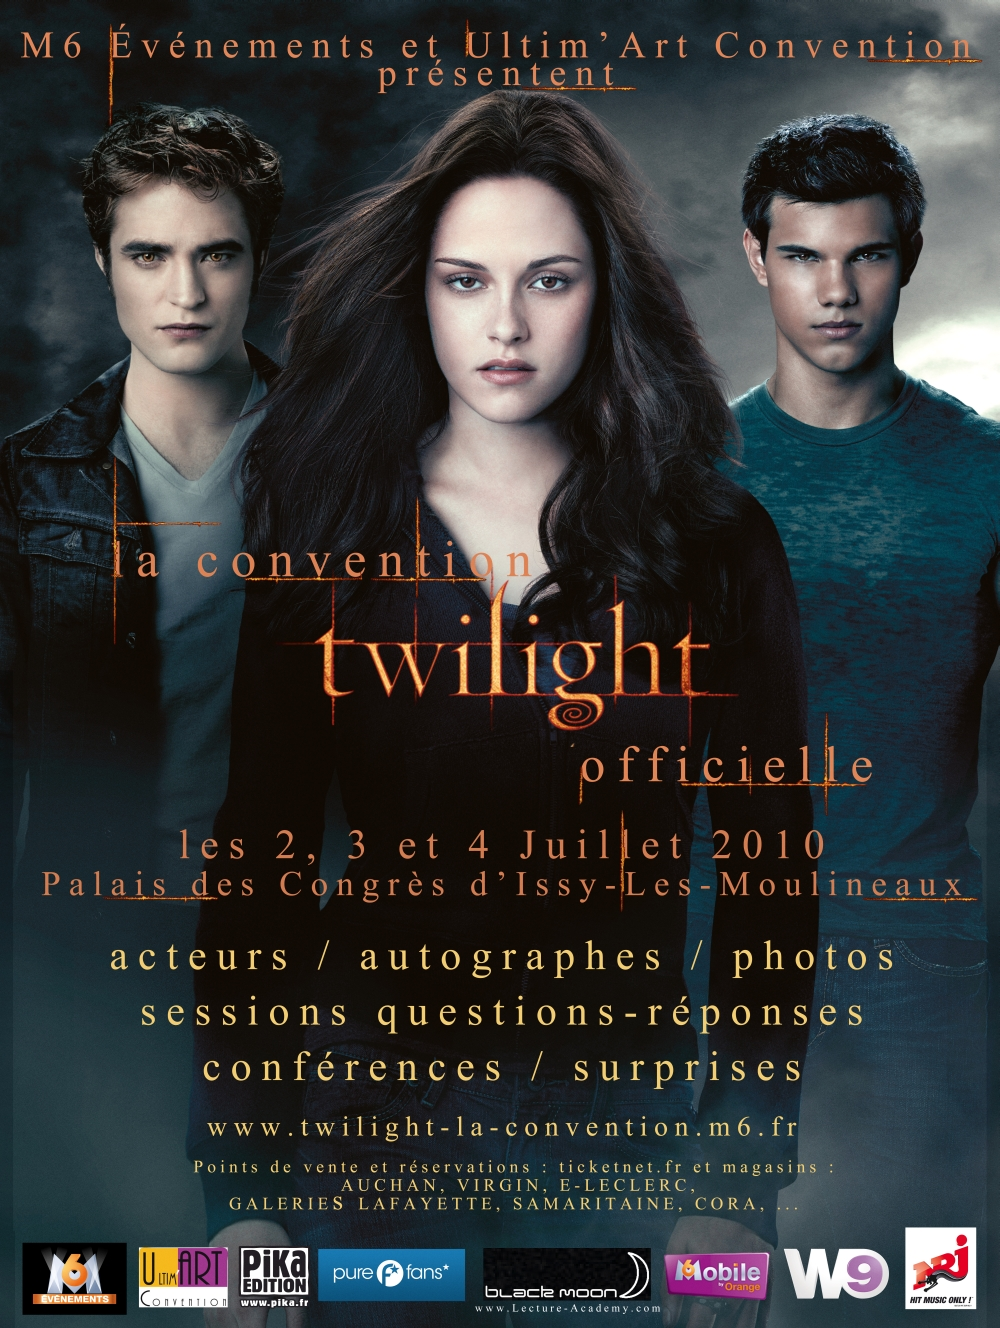 Twilight : affiche de la convention